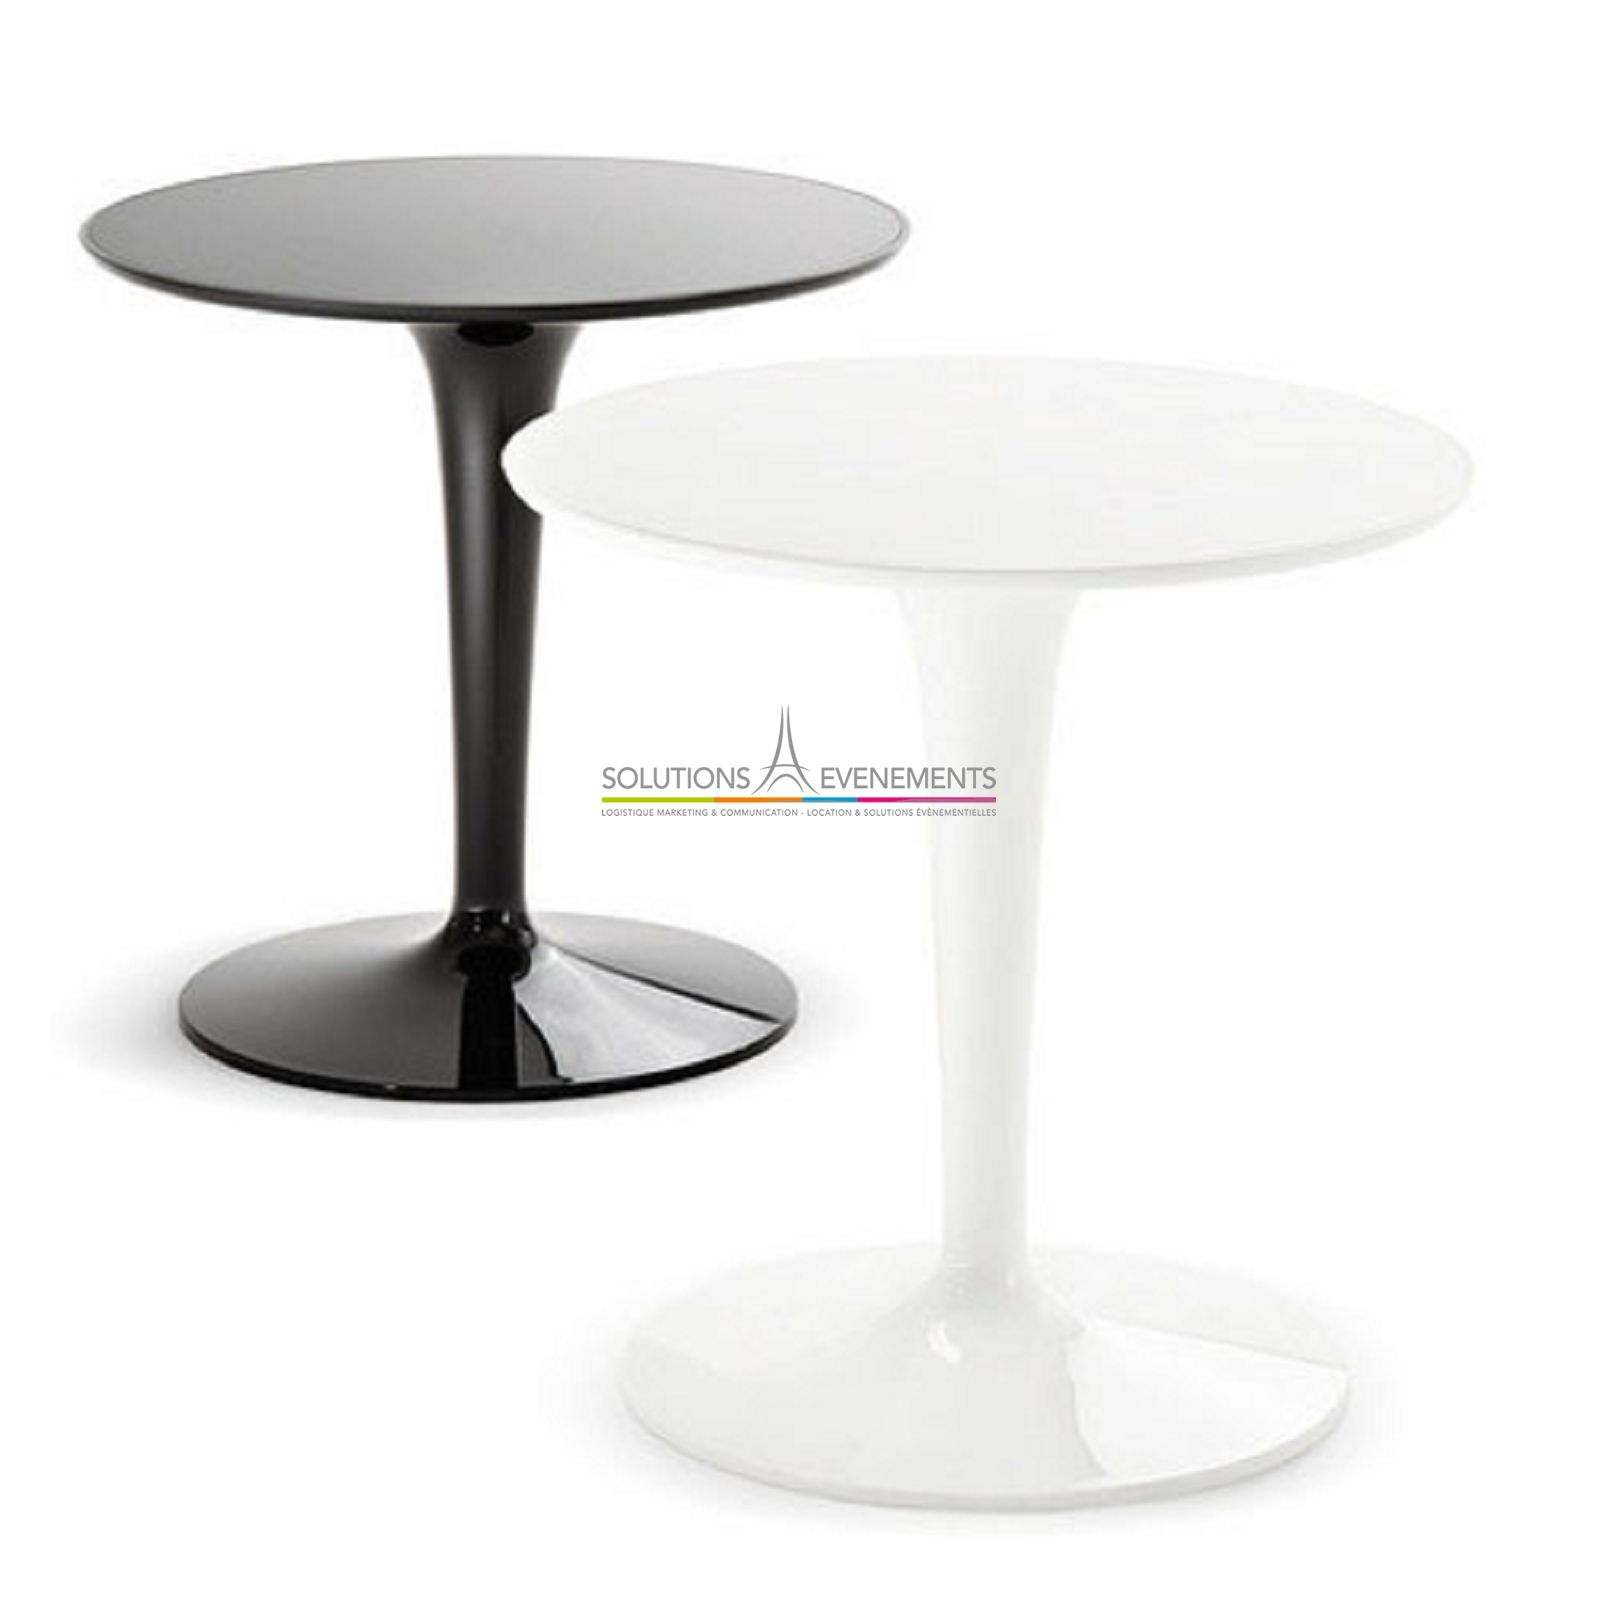 Location table basse tip top kartell paris for Table basse kartell